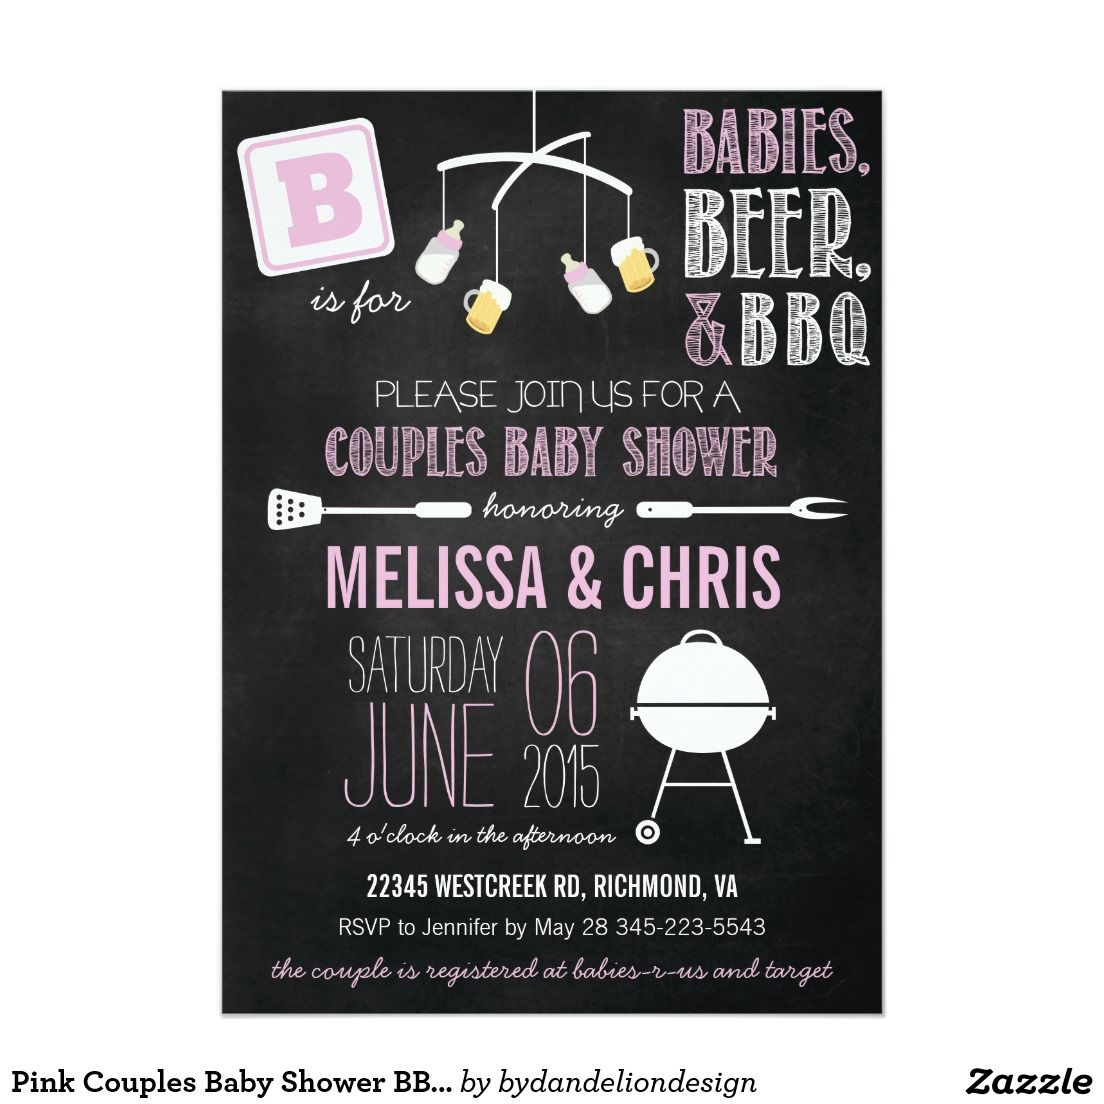 Pink Couples Baby Shower BBQ Invitation | Couples baby showers ...